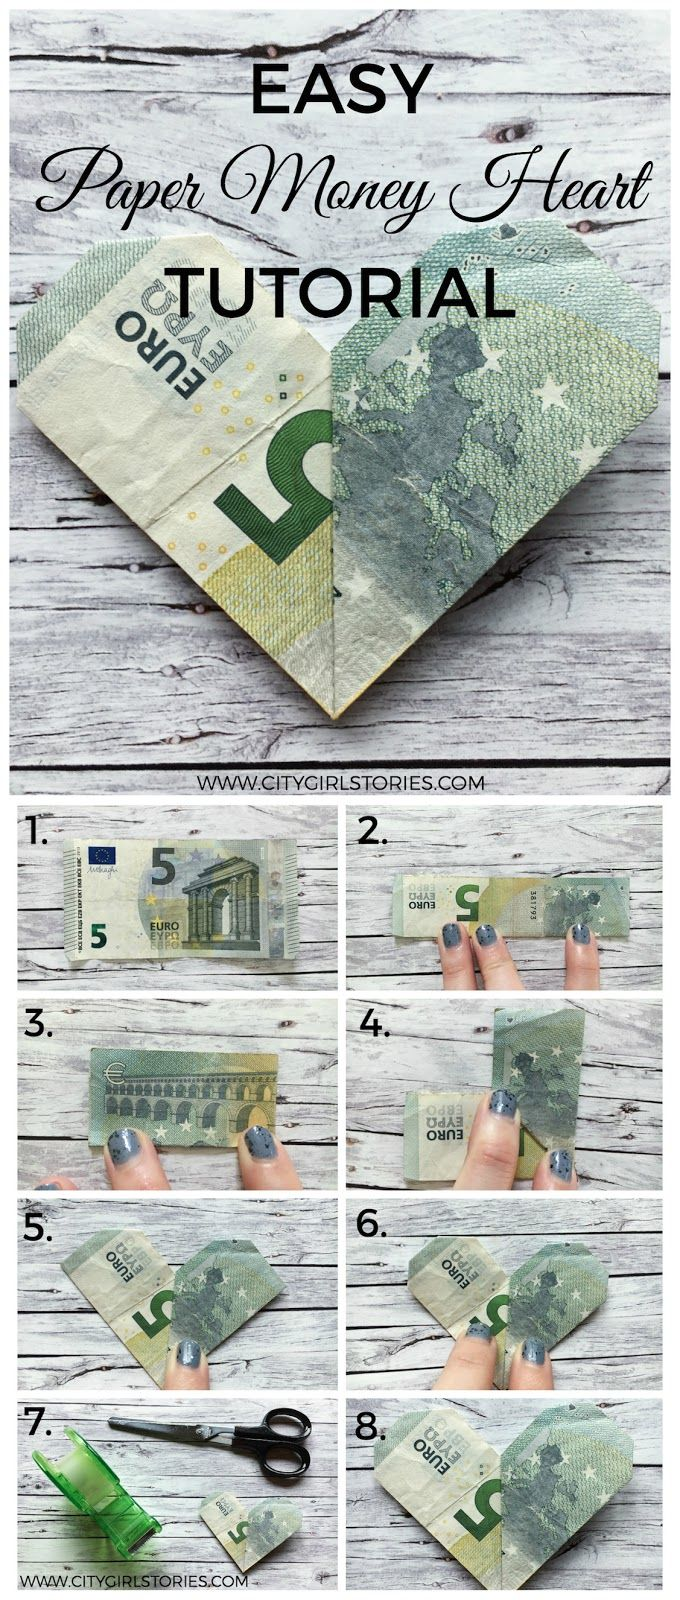 This Easy Paper Money Heart Folding Tutorial is a really lovely idea for a wedding gift or any other occasion you want to give some money but are looking for a more personal and creative way of doing